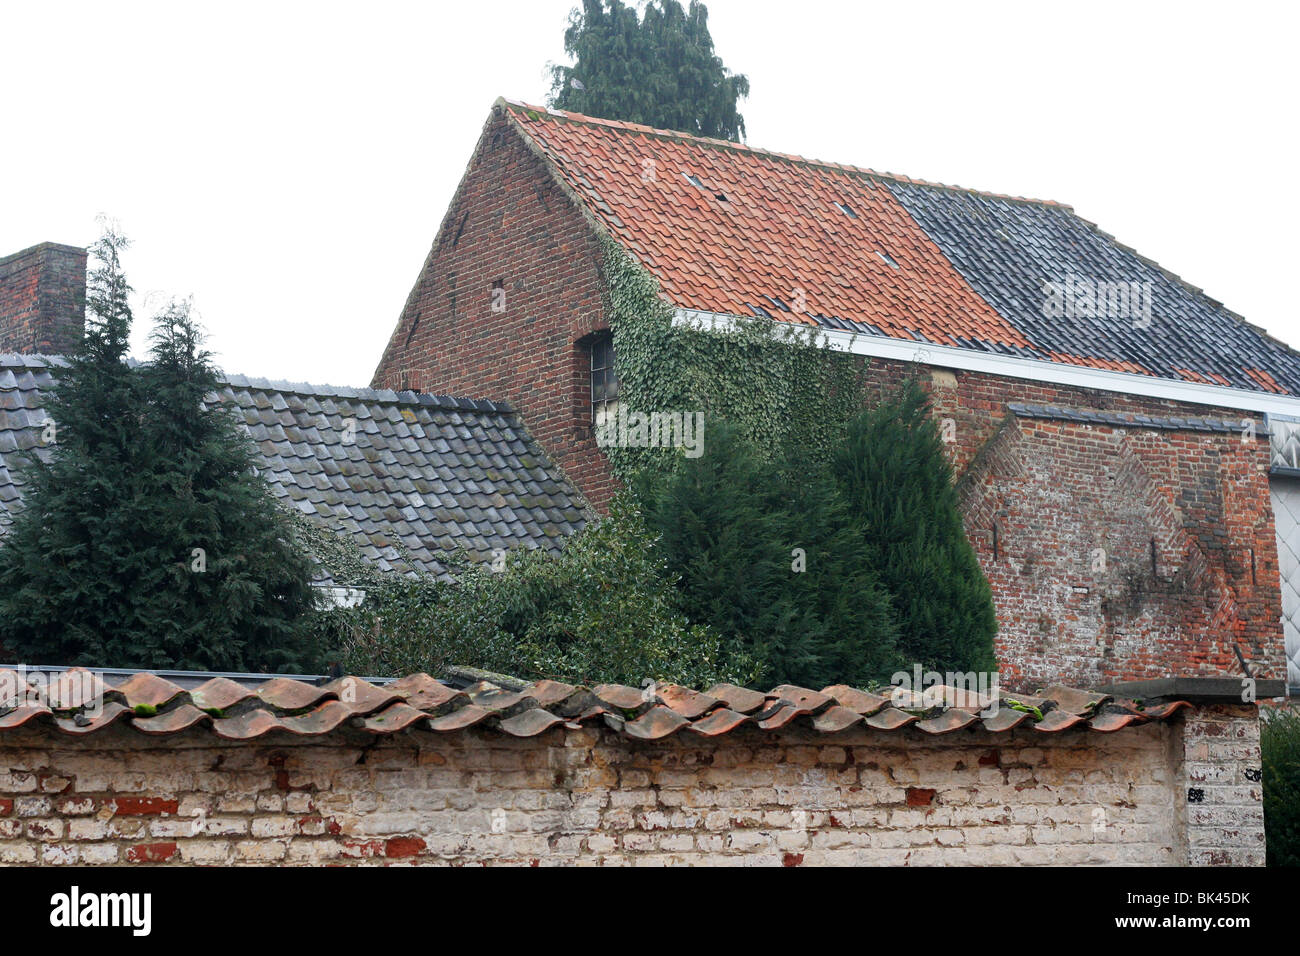 Old Roofs Old Roofs In Chievres Belgium Stock Photo Royalty Free Image